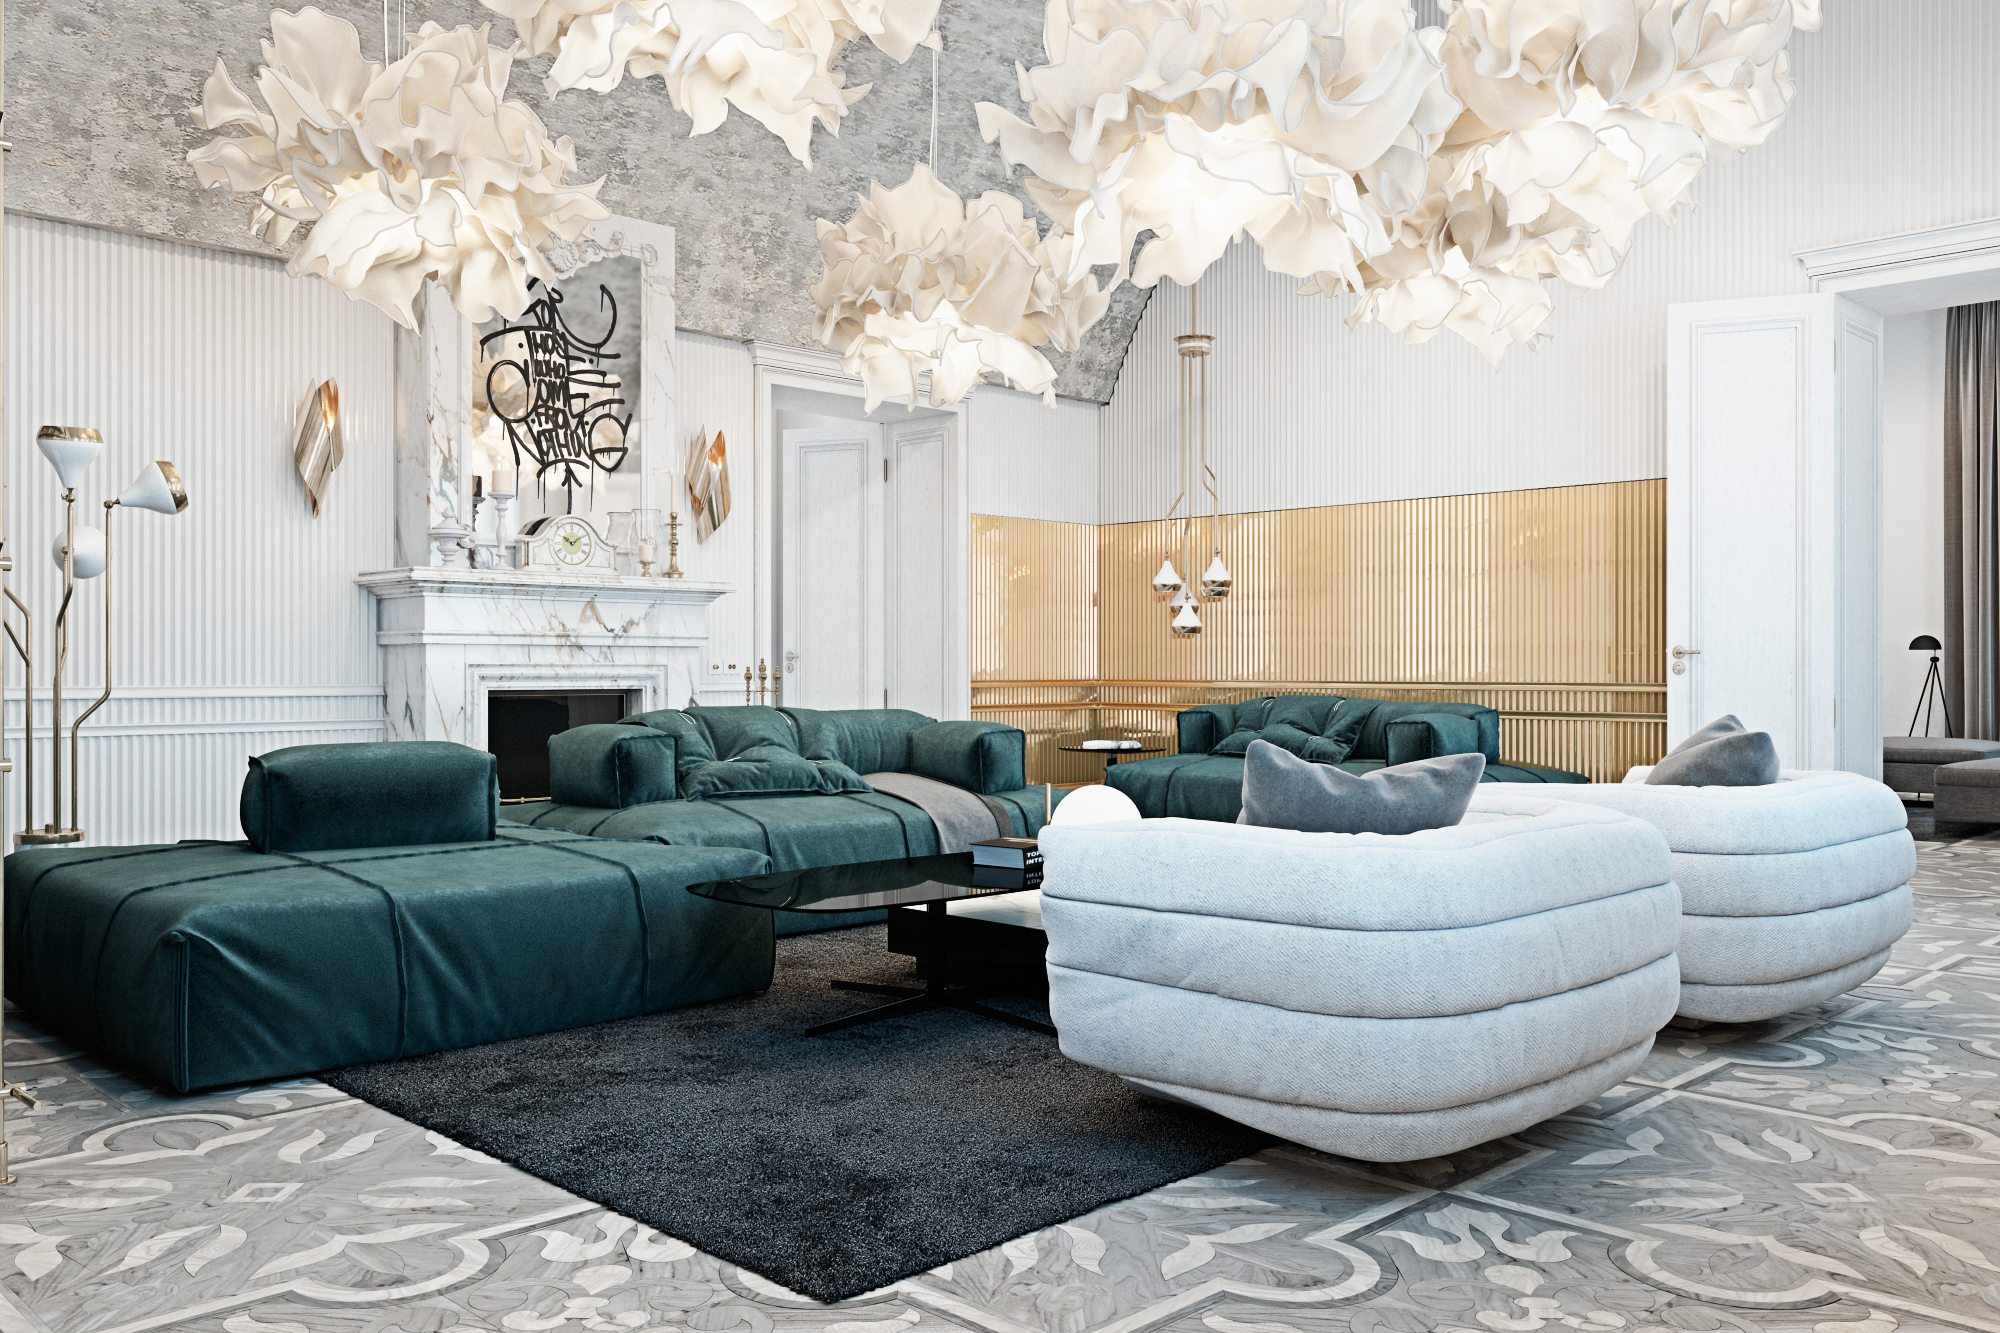 Luxury Living Room In Italian Contryside 1 Fall Love With This